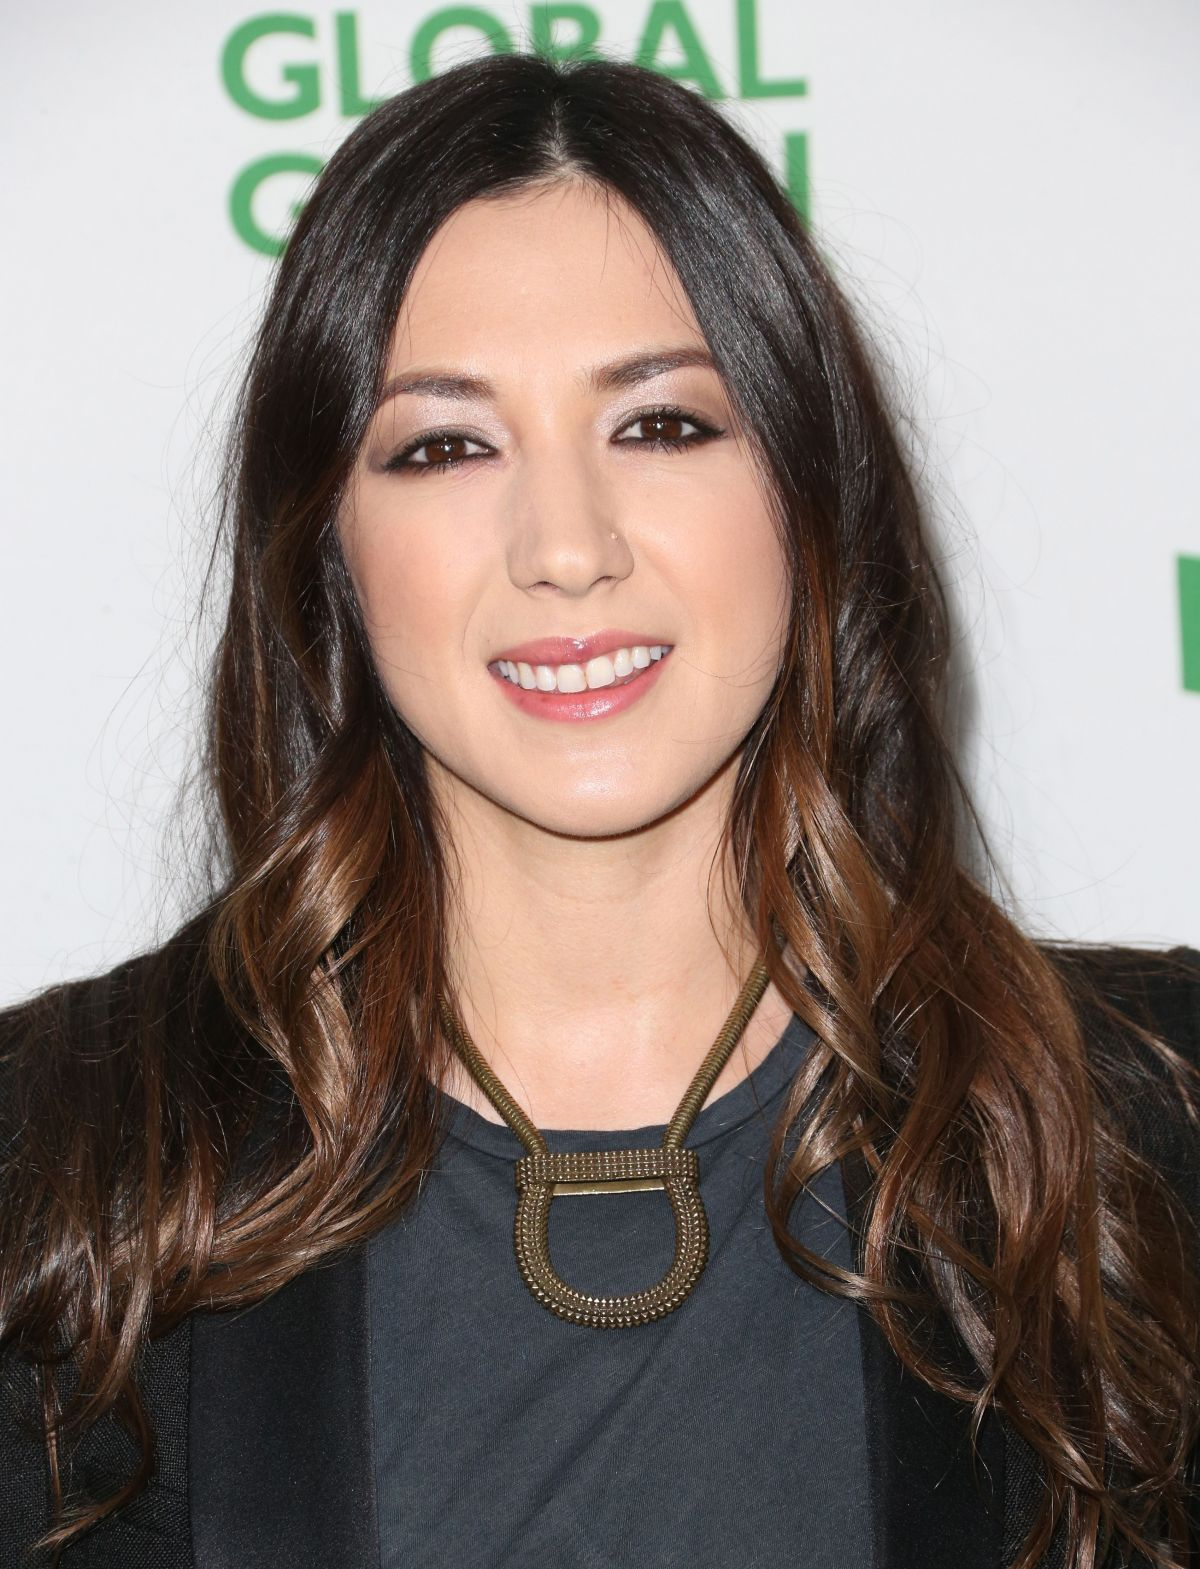 MICHELLE BRANCH at Global Green Usa